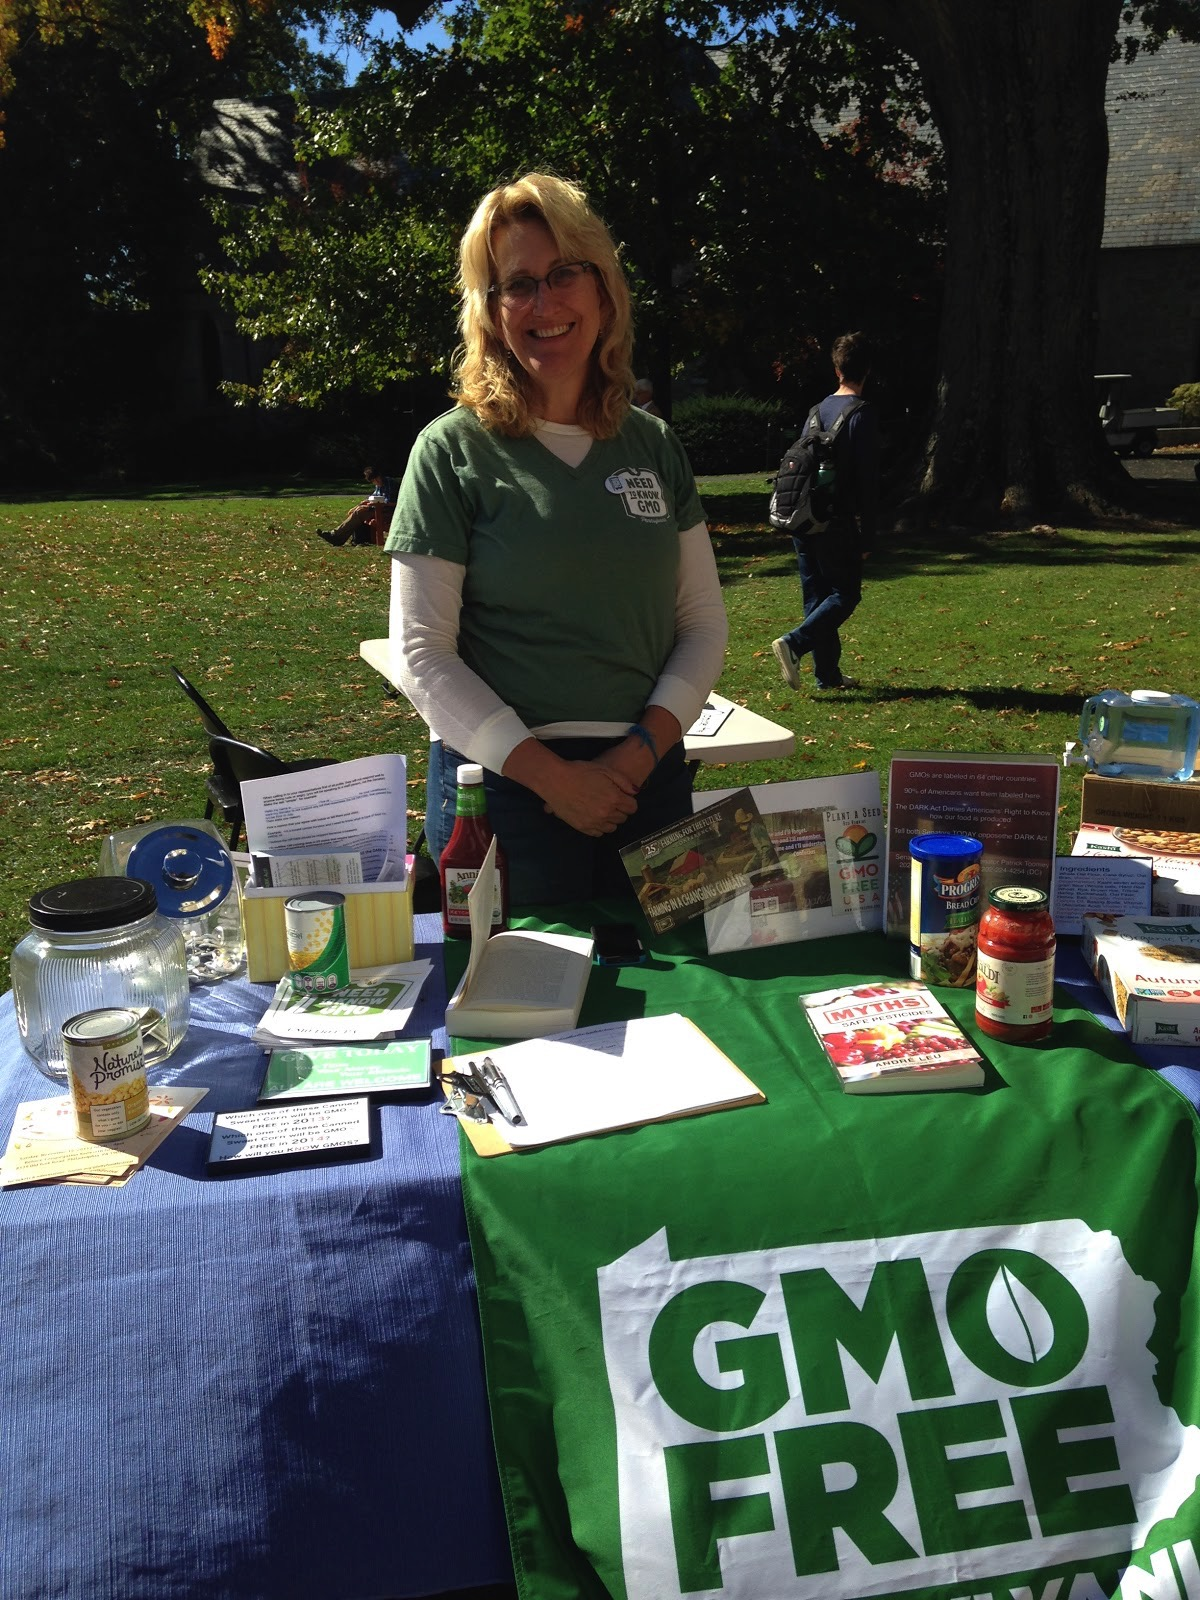 Representative from GMO Free Pennsylvania.